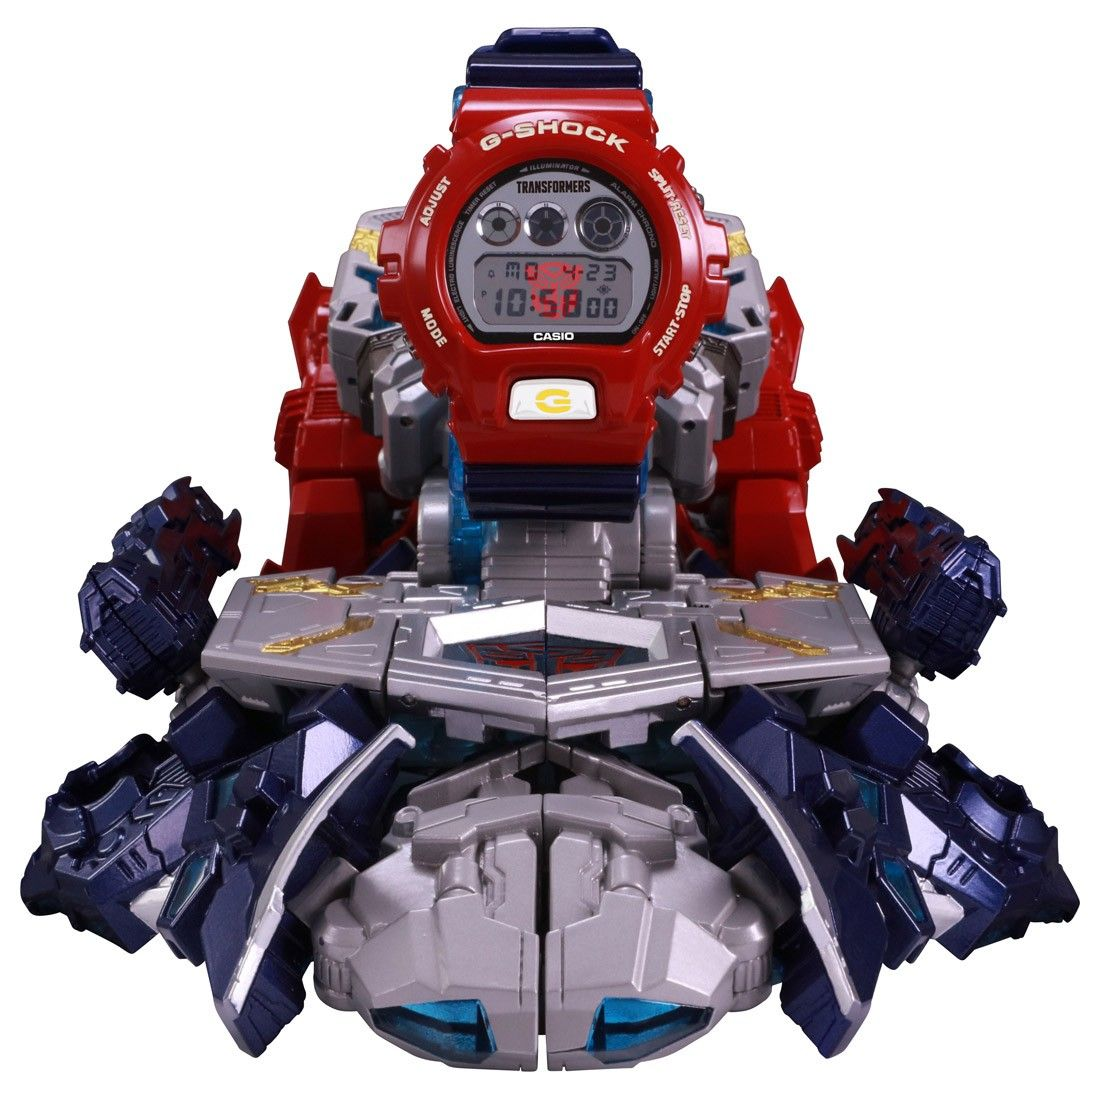 Takara G-SHOCK x Transformers Master Optimus Prime Action Figure Model KO Toy